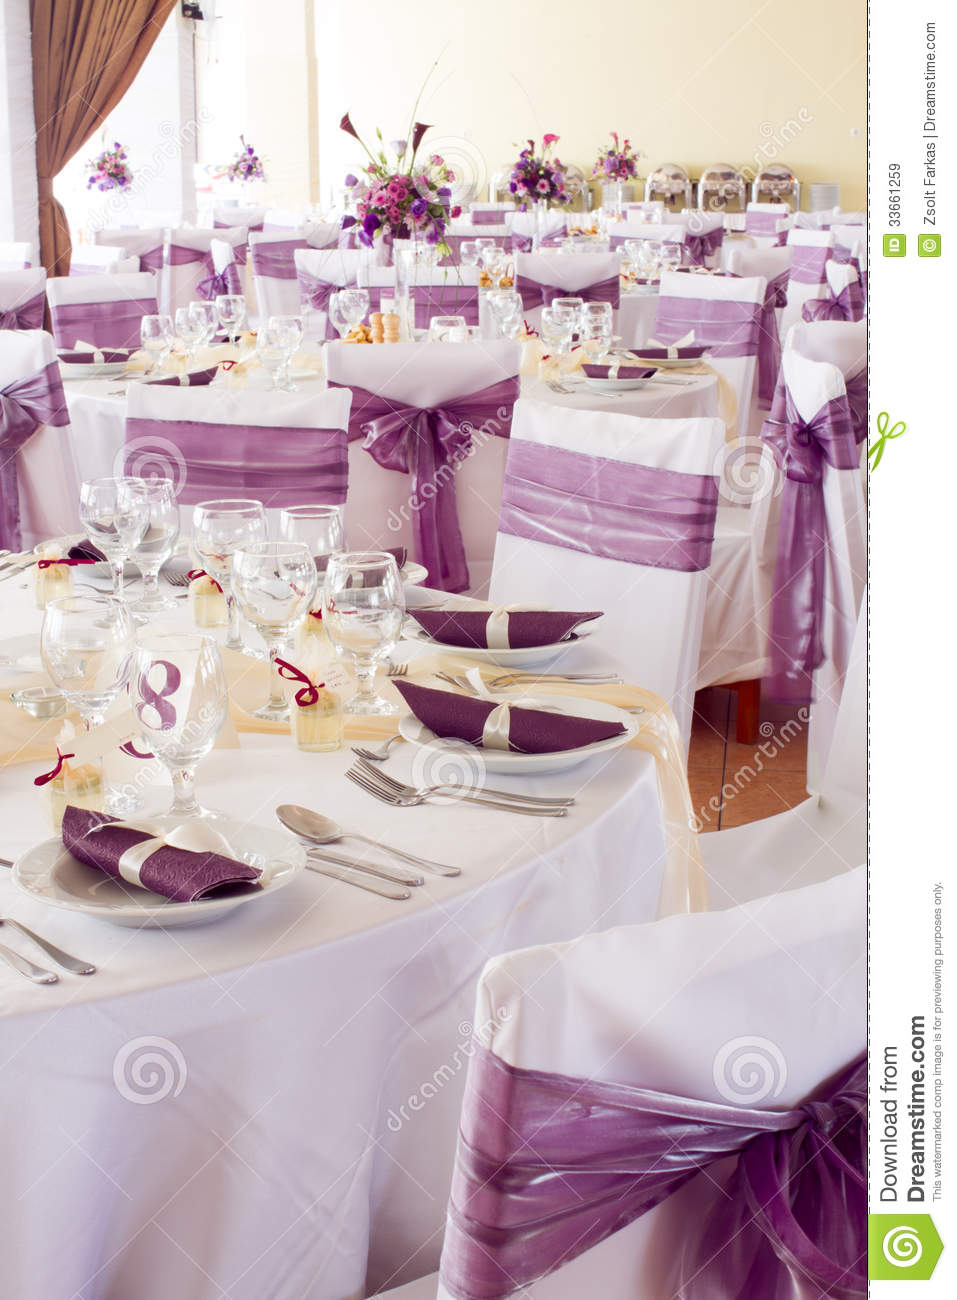 Wedding Tables Set For Fine Dining Or Another Catered